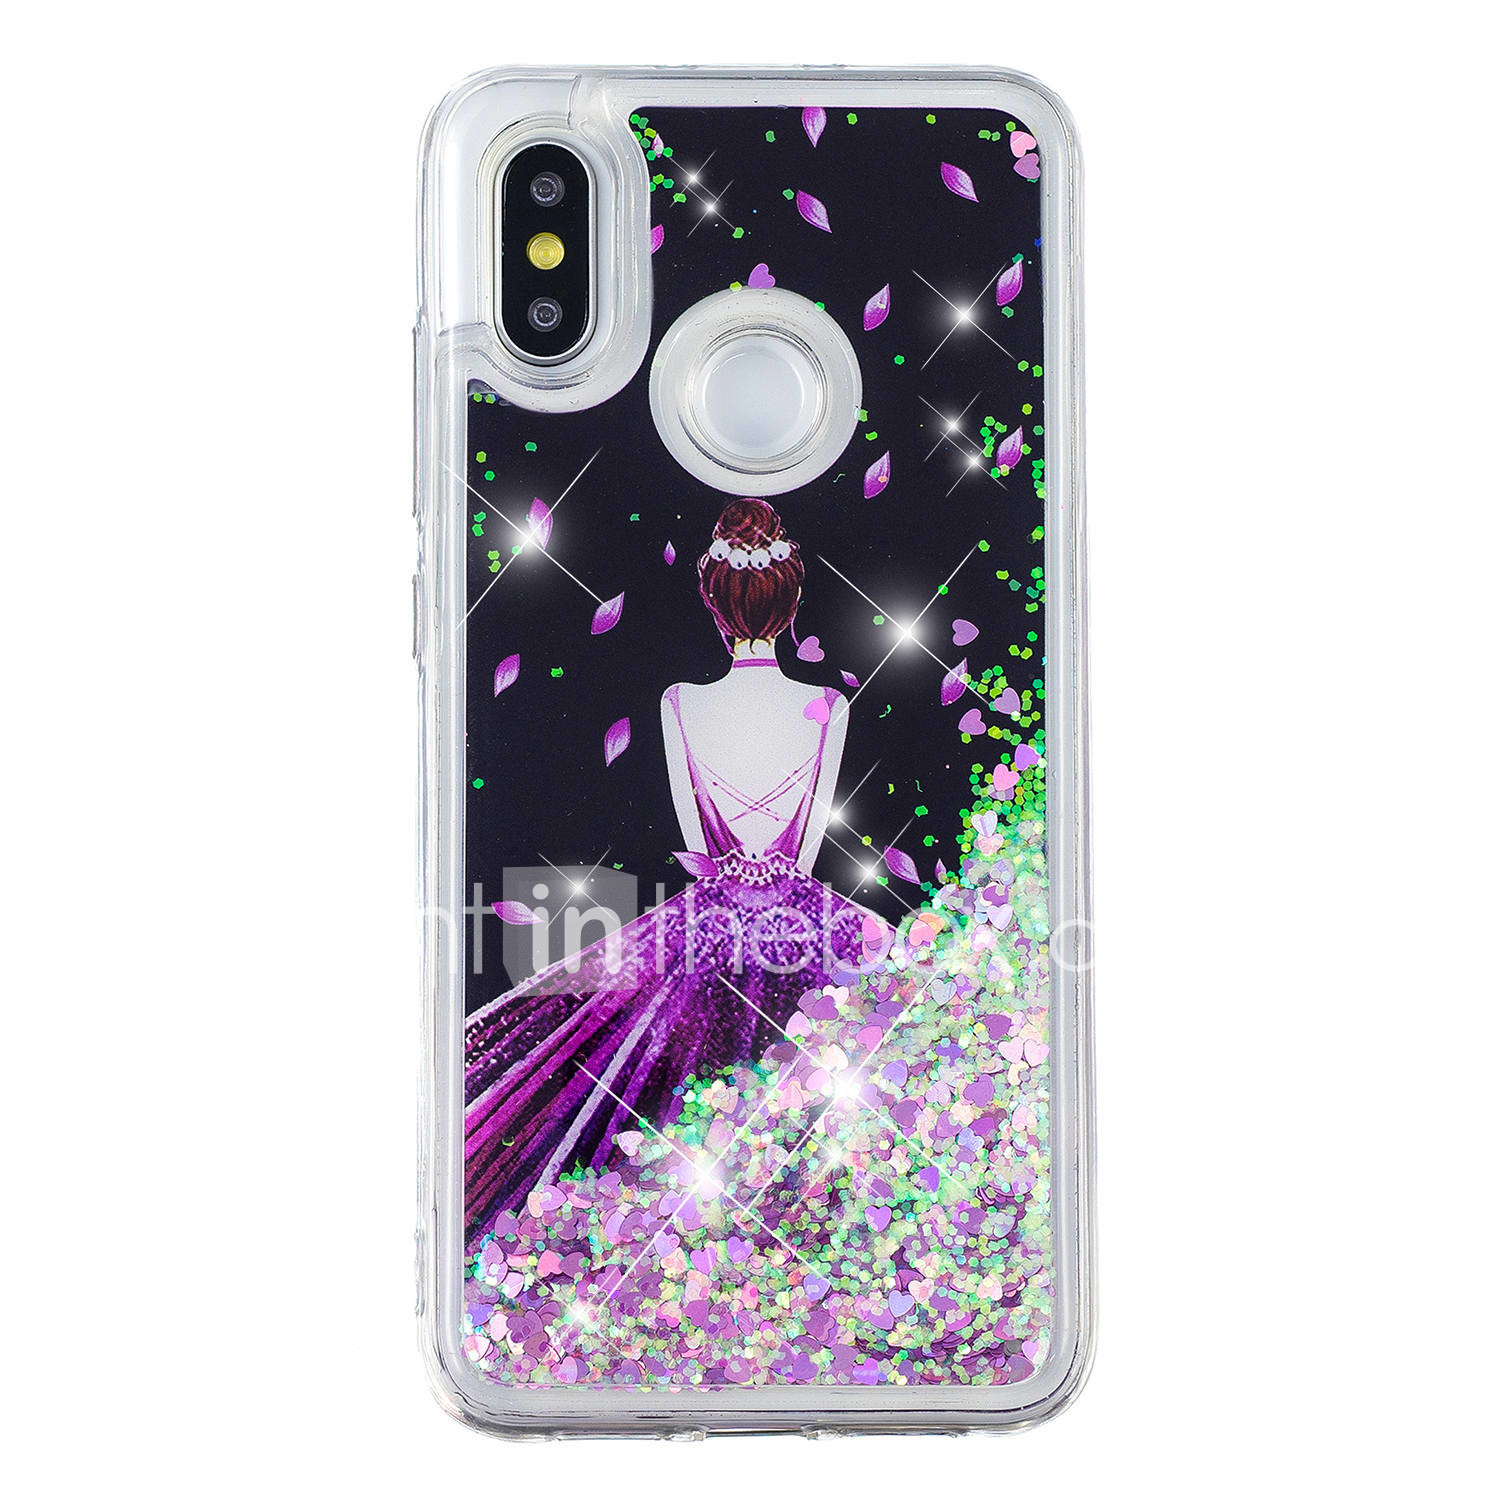 huge selection of 81076 a0537 Case For Xiaomi Xiaomi Redmi Note 5 Pro / Xiaomi Redmi Note 4X / Xiaomi  Redmi Note 4 Flowing Liquid / Pattern / Glitter Shine Back Cover Sexy Lady  / ...